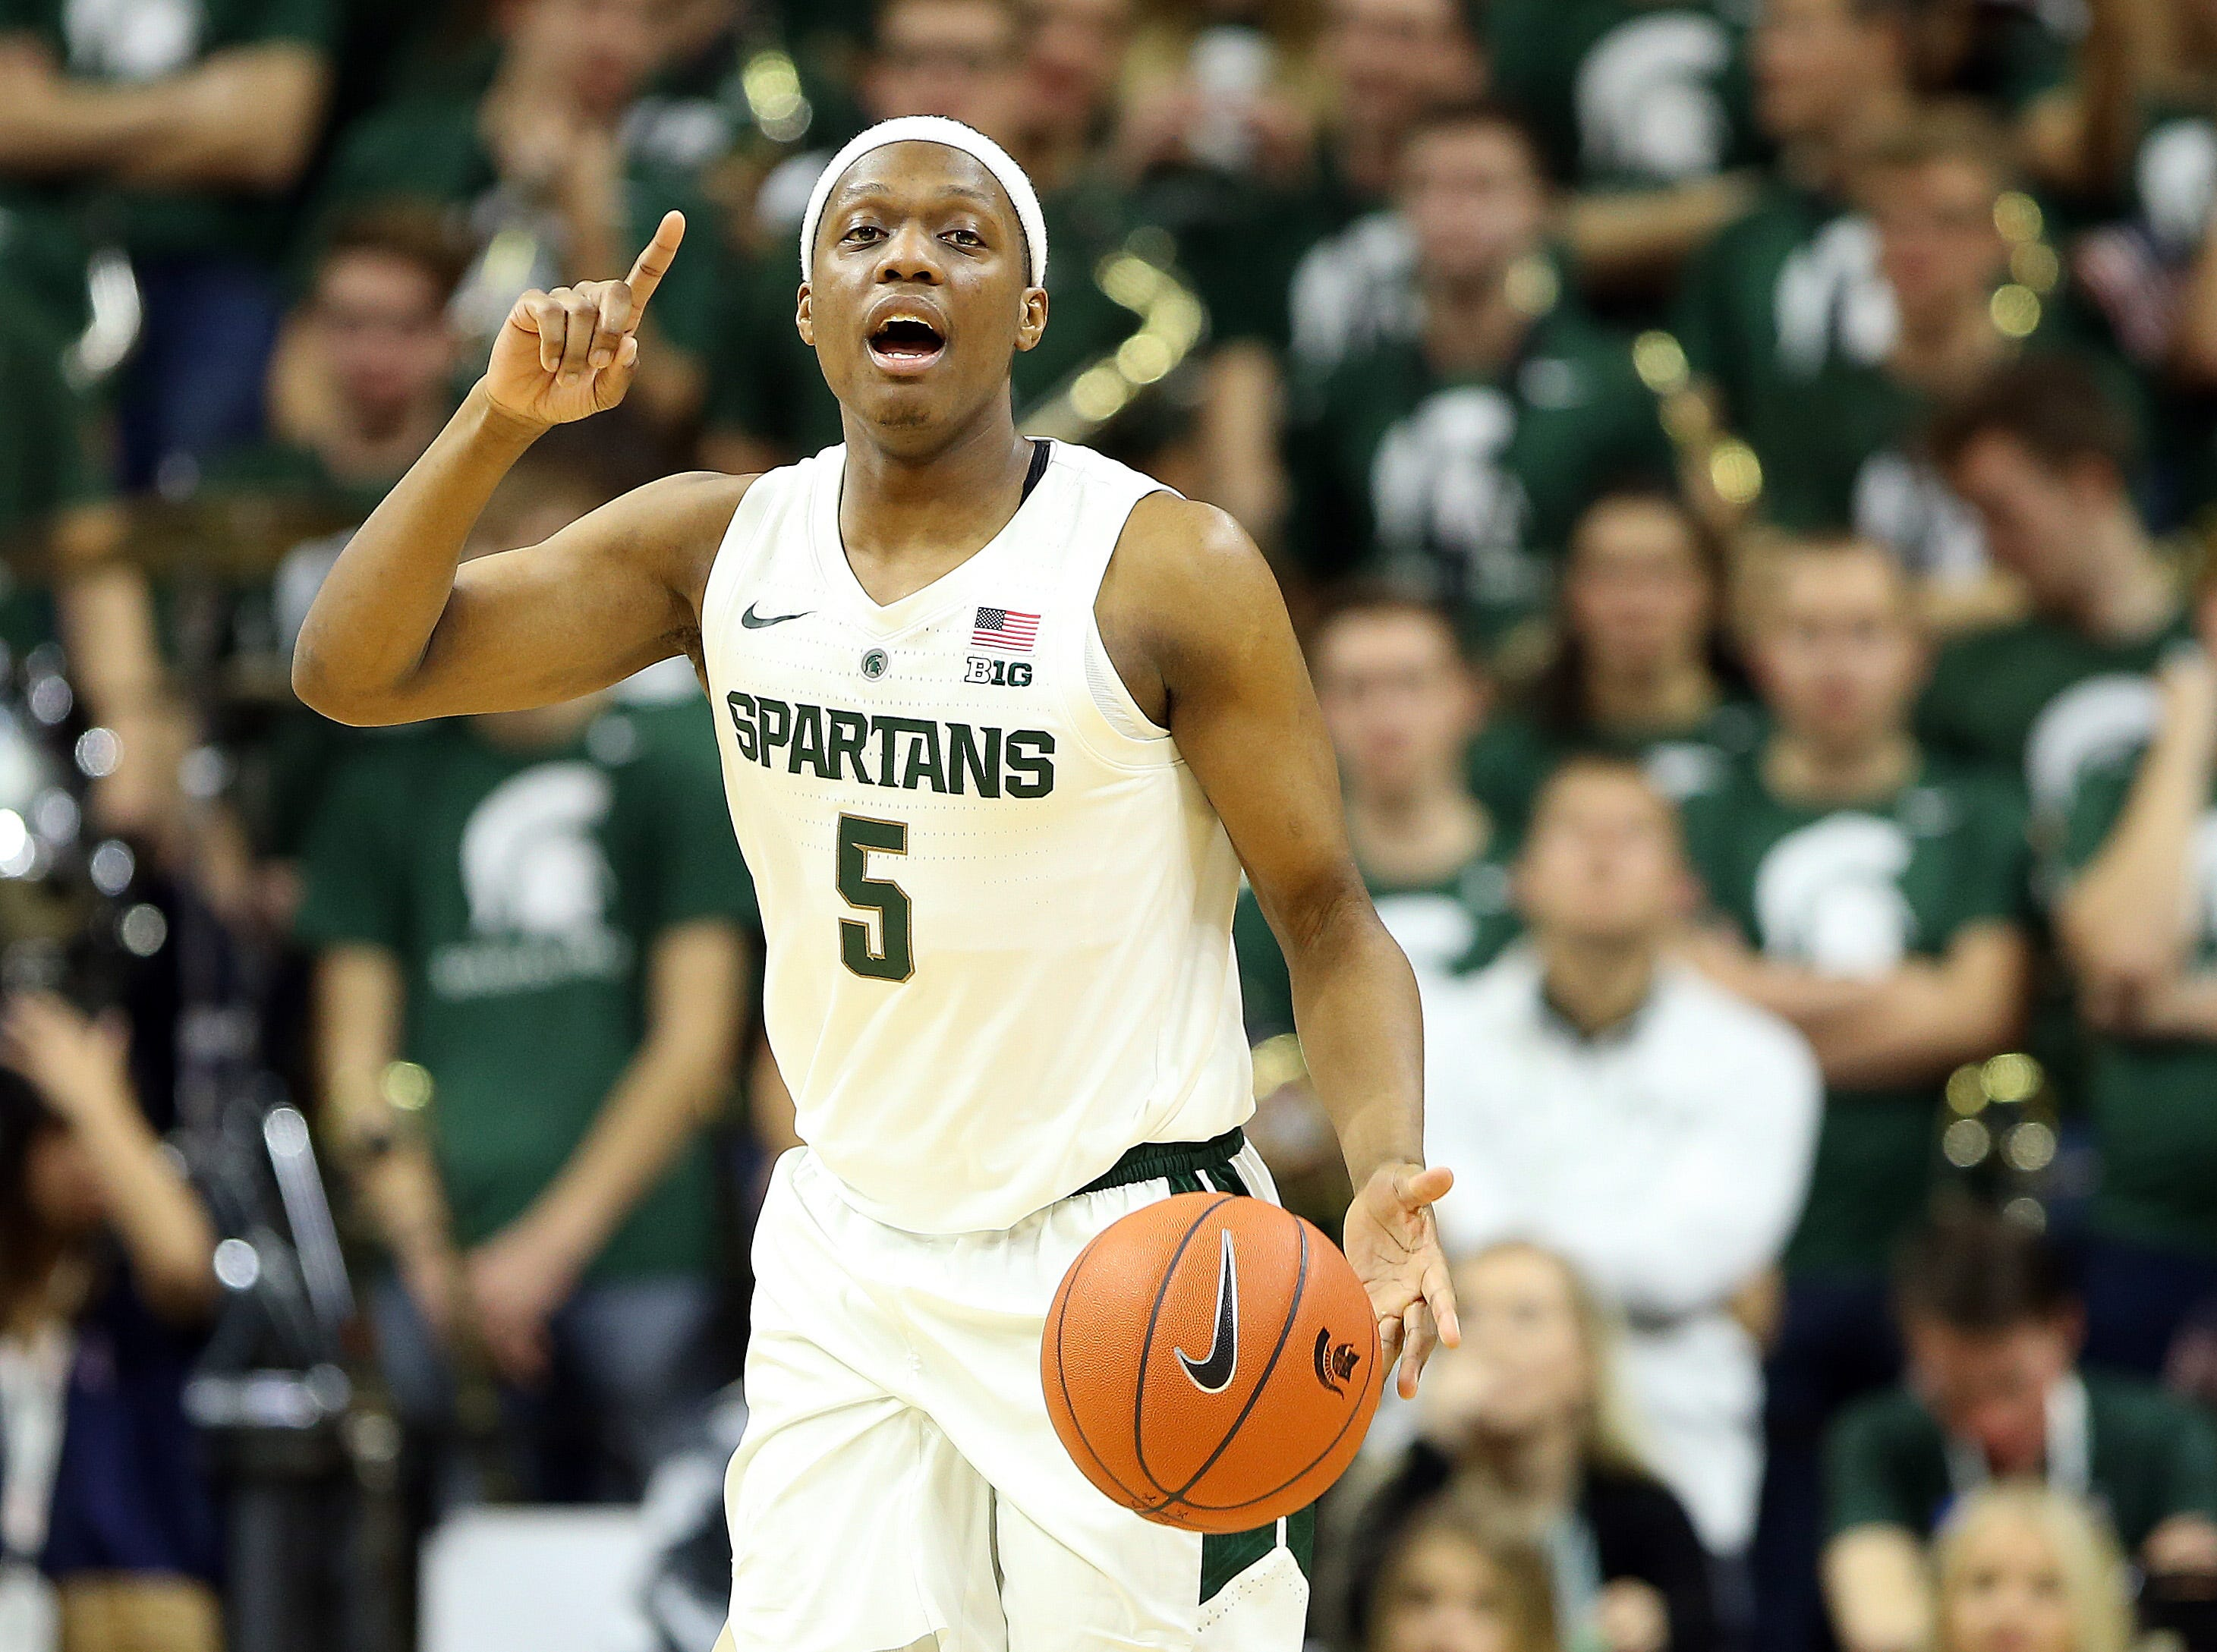 Nov 11, 2018; East Lansing, MI, USA; Michigan State Spartans guard Cassius Winston (5) gestures during the second half of a game against the Florida Gulf Coast Eagles at the Breslin Center. Mandatory Credit: Mike Carter-USA TODAY Sports